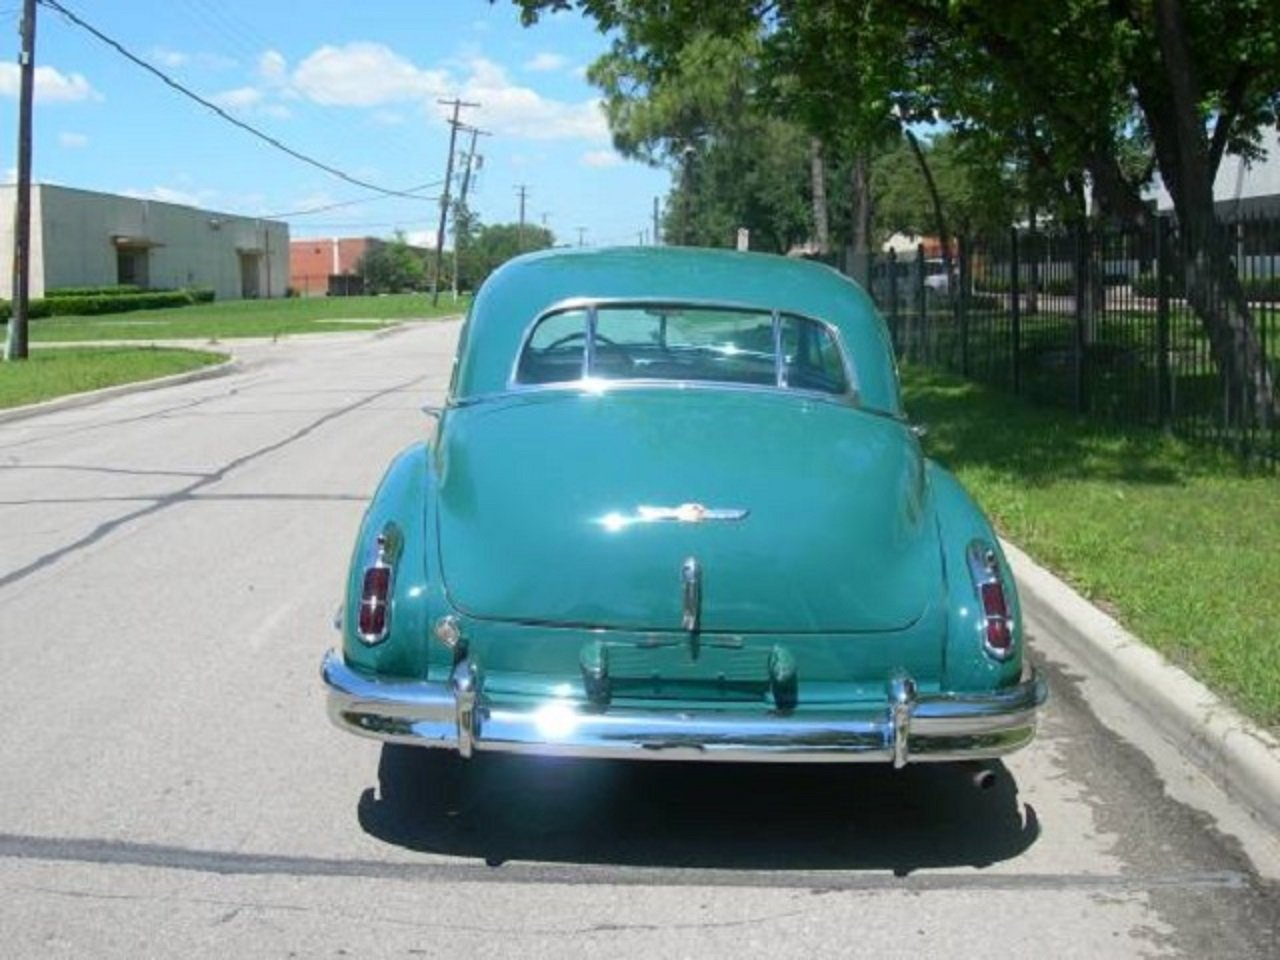 1947 Cadillac 62 4DR Sedan For Sale (picture 3 of 6)